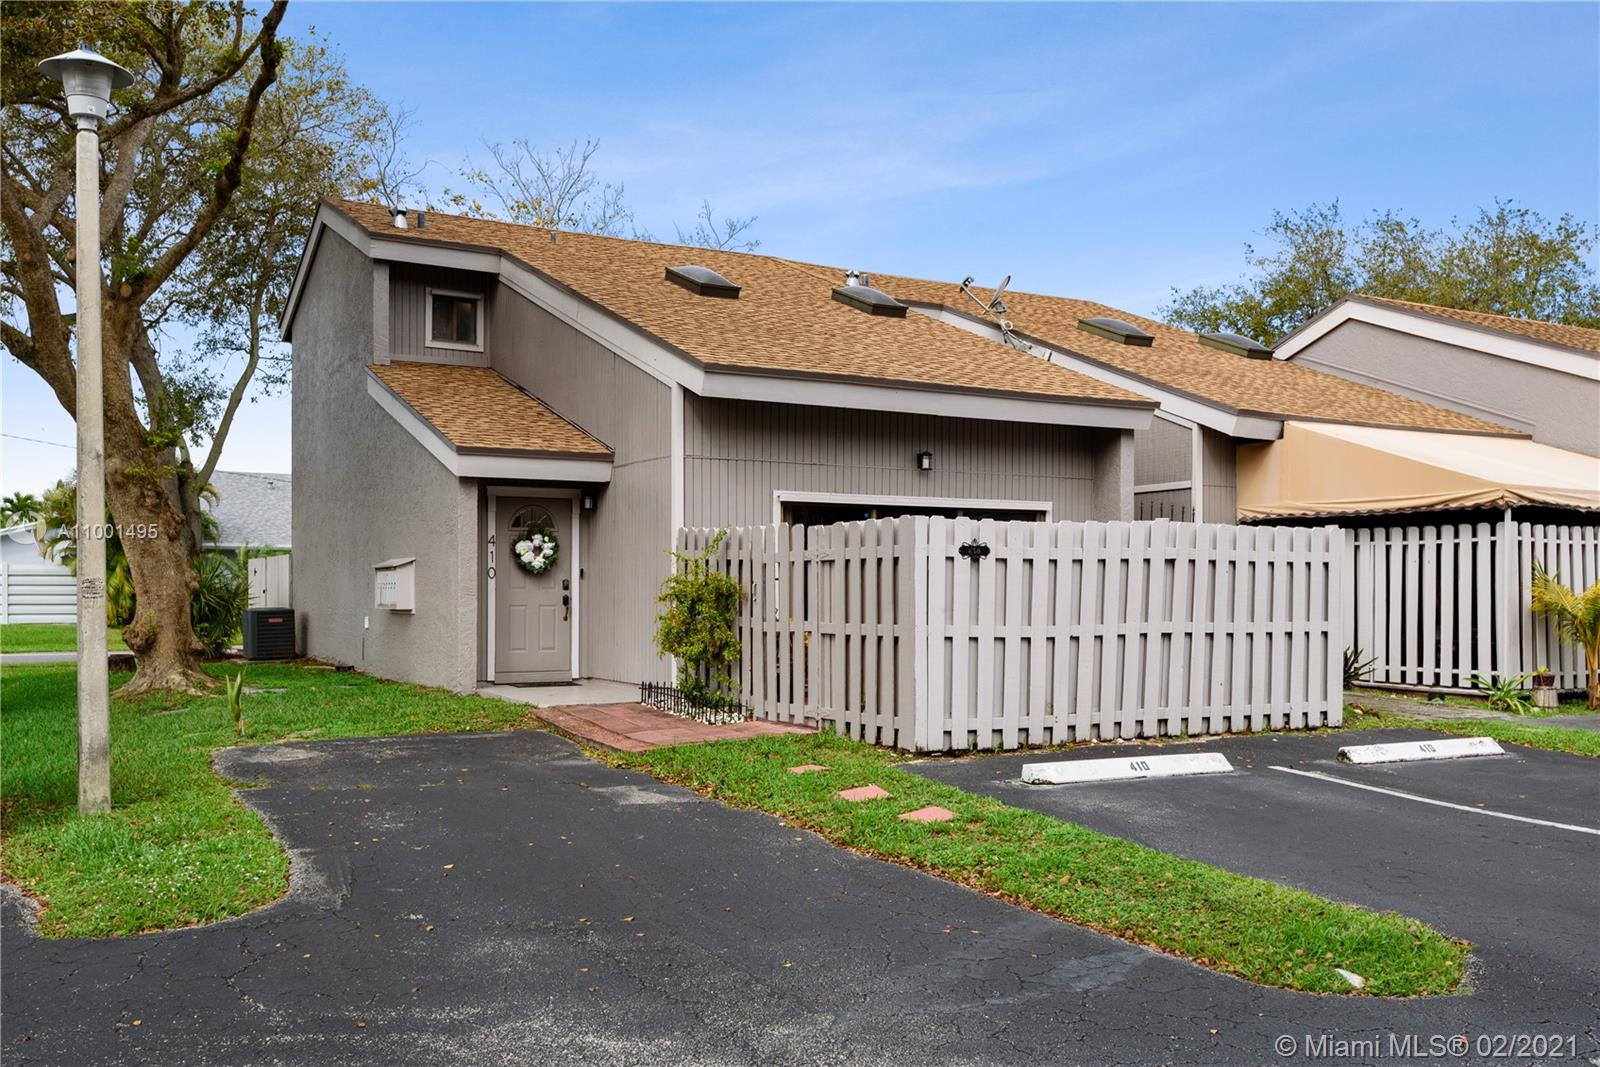 This exclusive townhome corner unit is an update galore! Feels like a single family home, this desirable 2beds/2baths opened floor plan features a two story high ceiling w/attractive skylights, a dining room, a livingroom, a laundryroom, walk-in closet, plenty of storage, a fenced front yard, a patio and a terrace off the master bedroom. The house has newer porcelain look-like wood flooring throughout the first level, newer appliances and AC unit replaced 2016. A spacious laundry room with cabinets is located on the ground floor. The entire home offers plenty of storage . The low HOA ($185/m) covers water, sewer, community pool, and much more. The development was repainted in 2016, new roof 2017. Located close to the beach & airport. Contact me quickly as this will not last on the market.